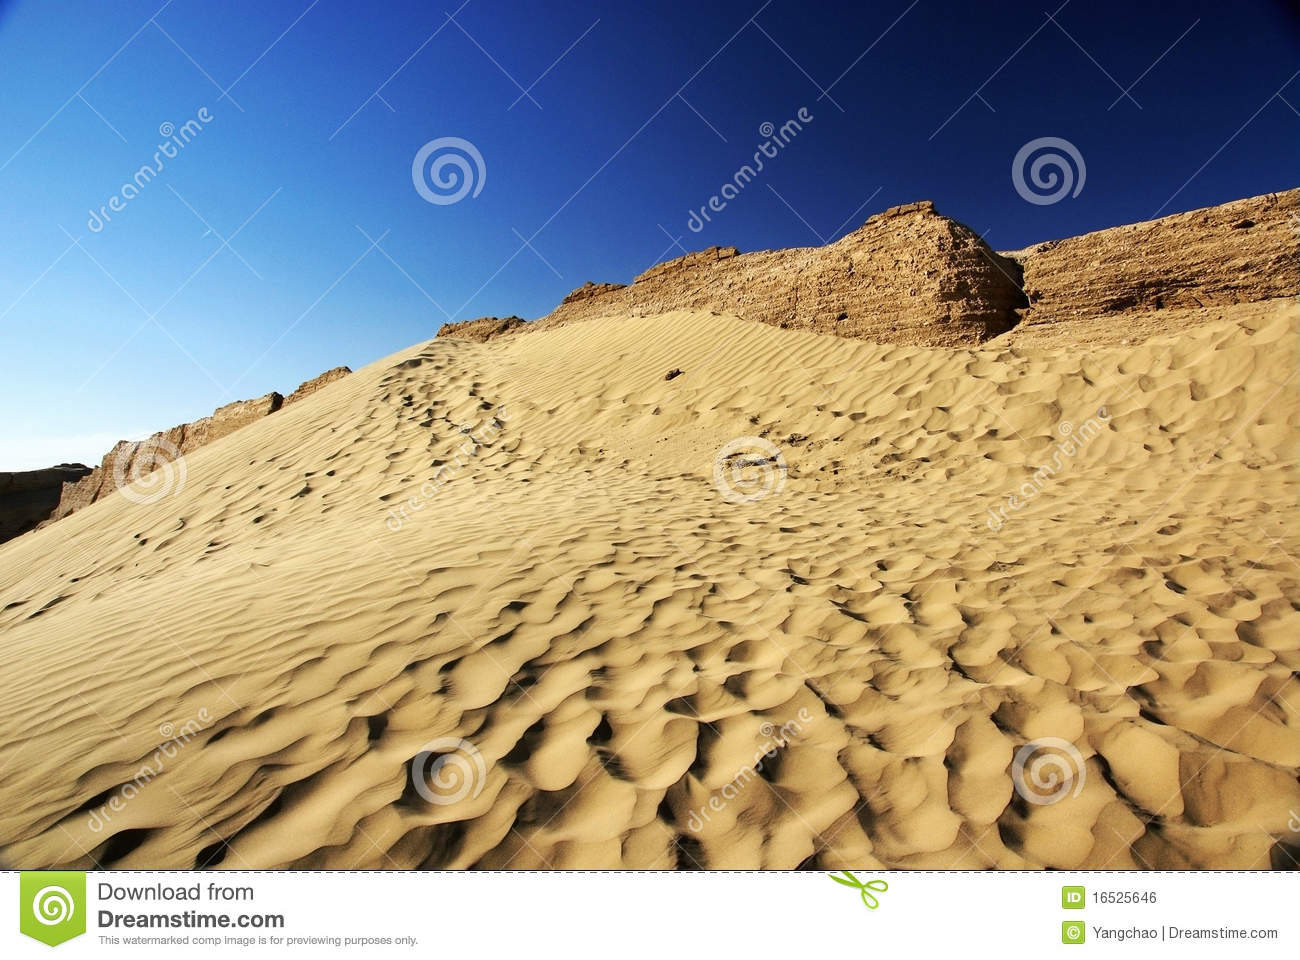 Desert with rotten ancient city wall